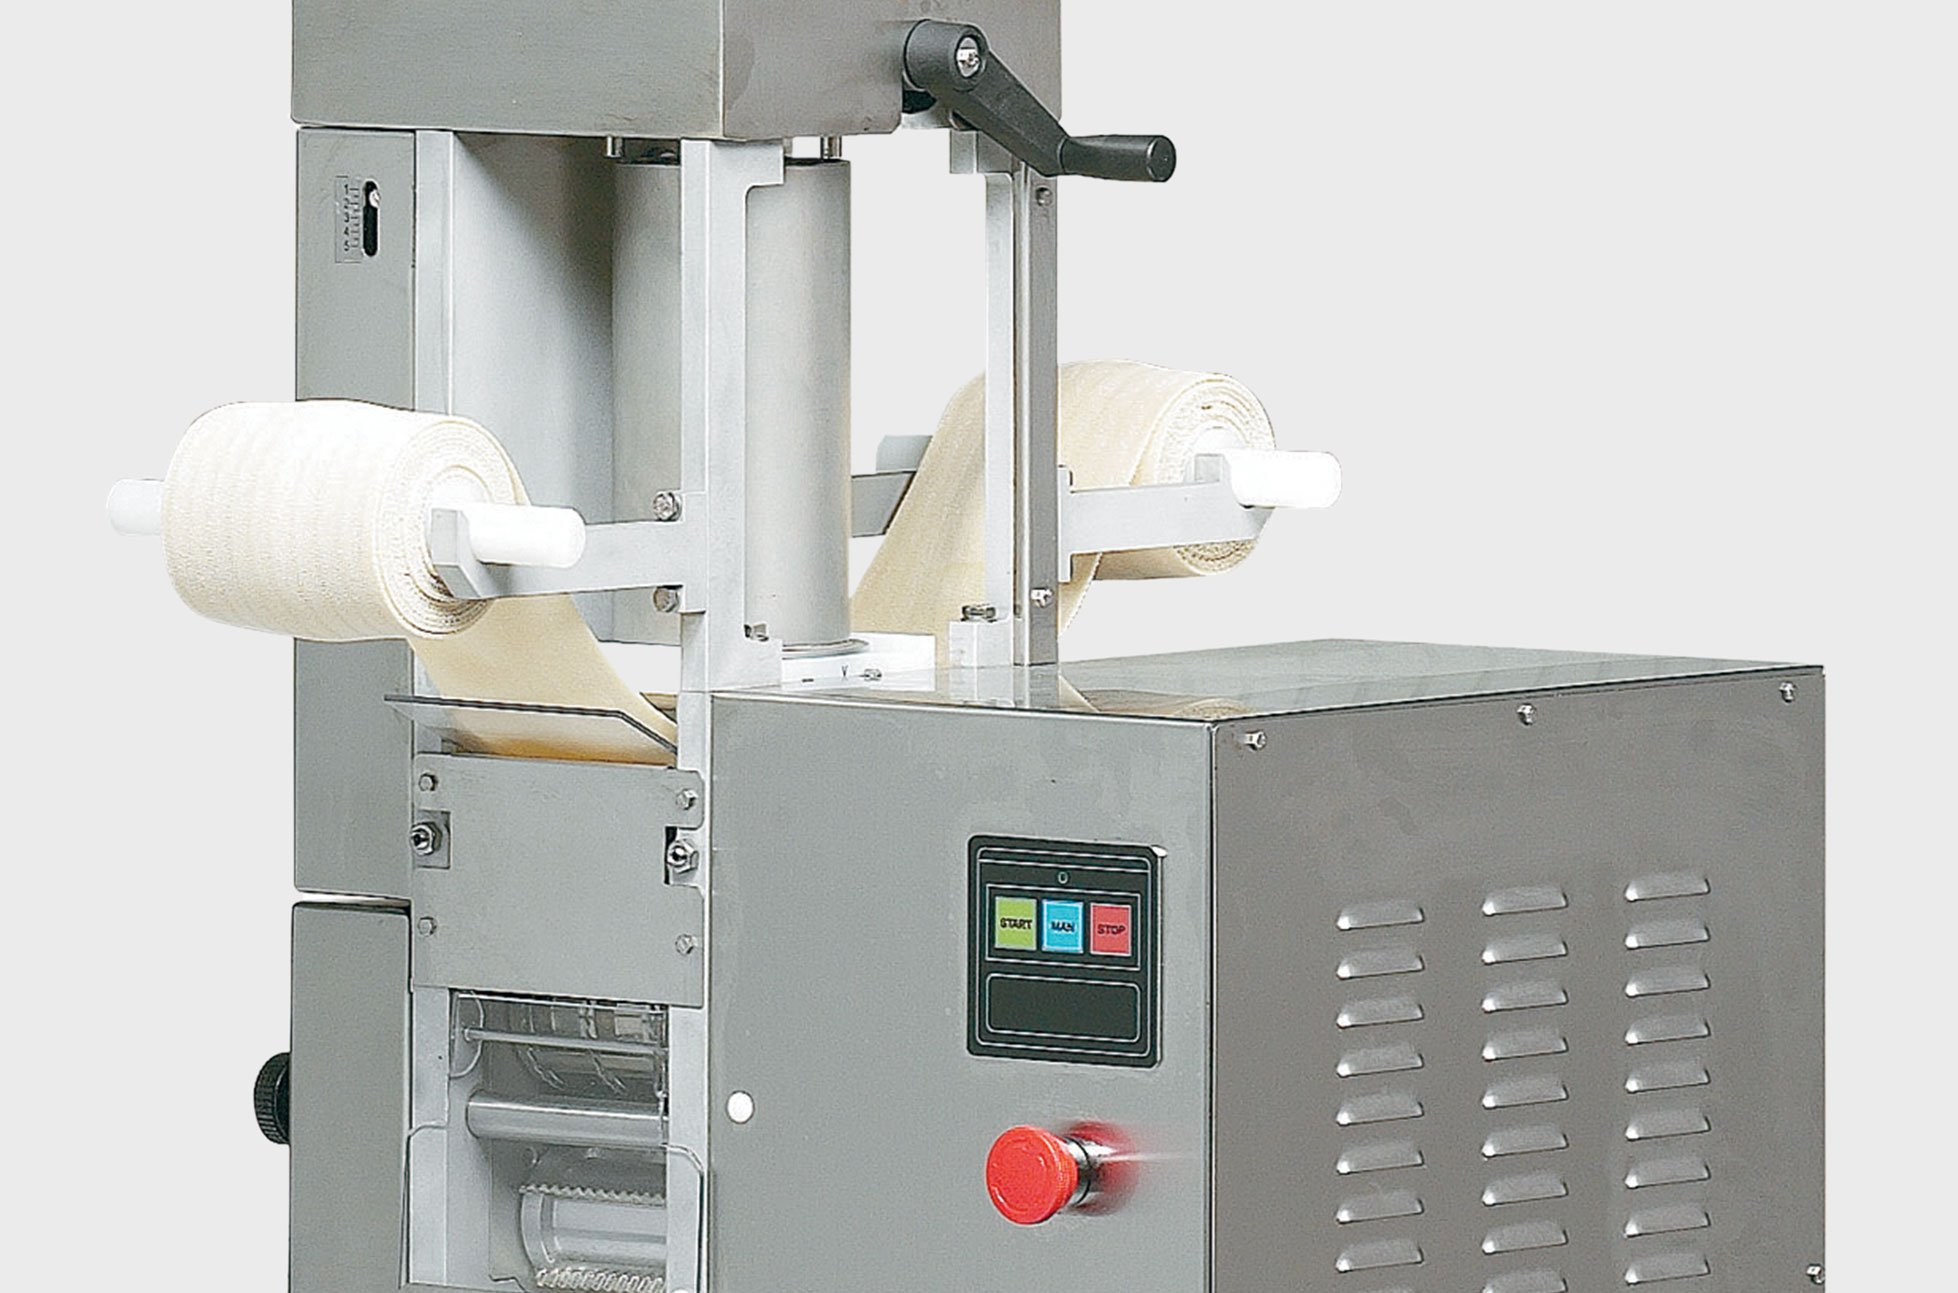 RV Line The mono-phase double sheet ravioli machines La Pastaia